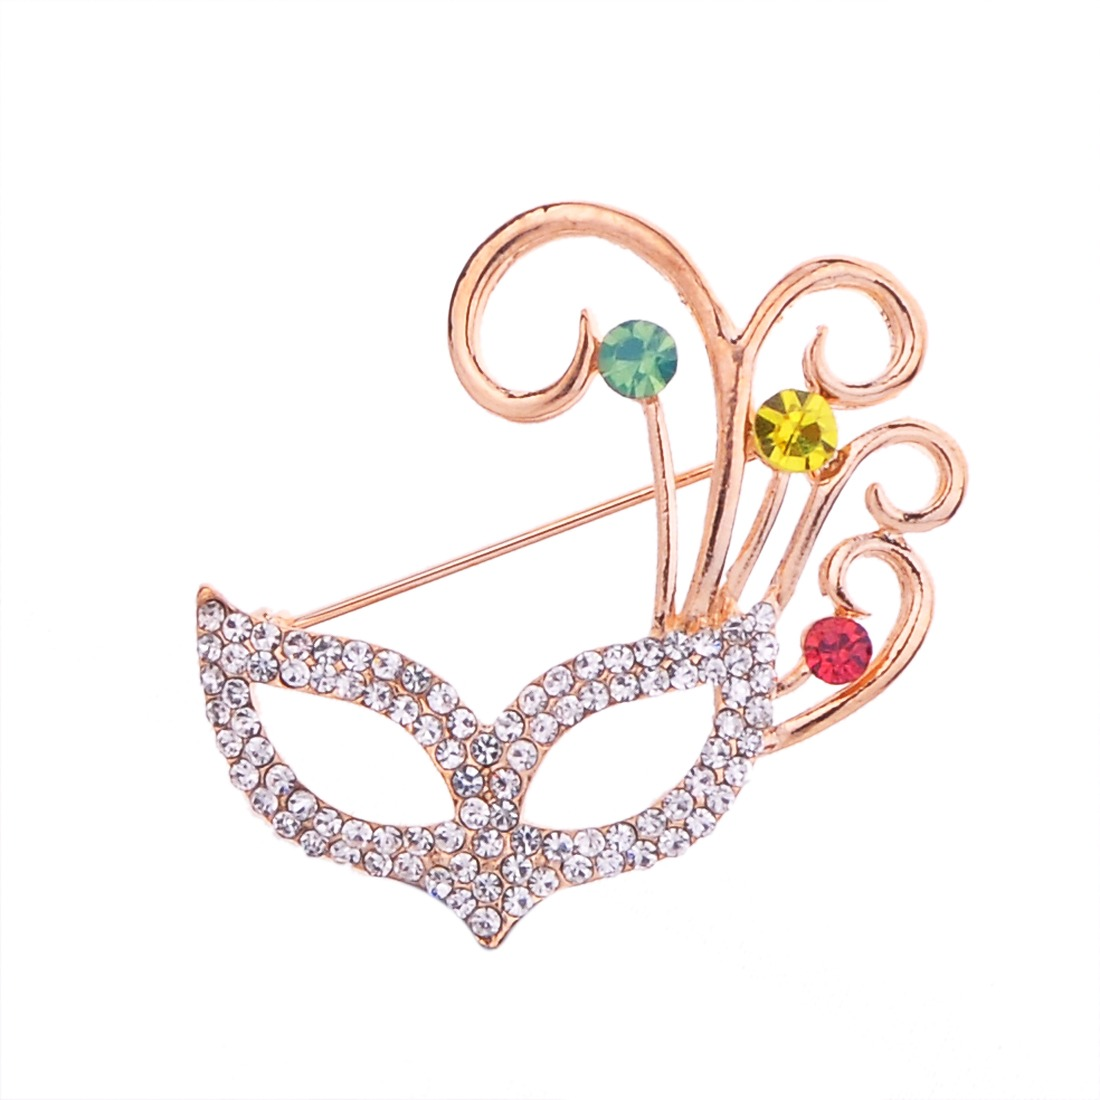 Fox eye mask with colorful crystal wedding prom brooch pin silver gold tone